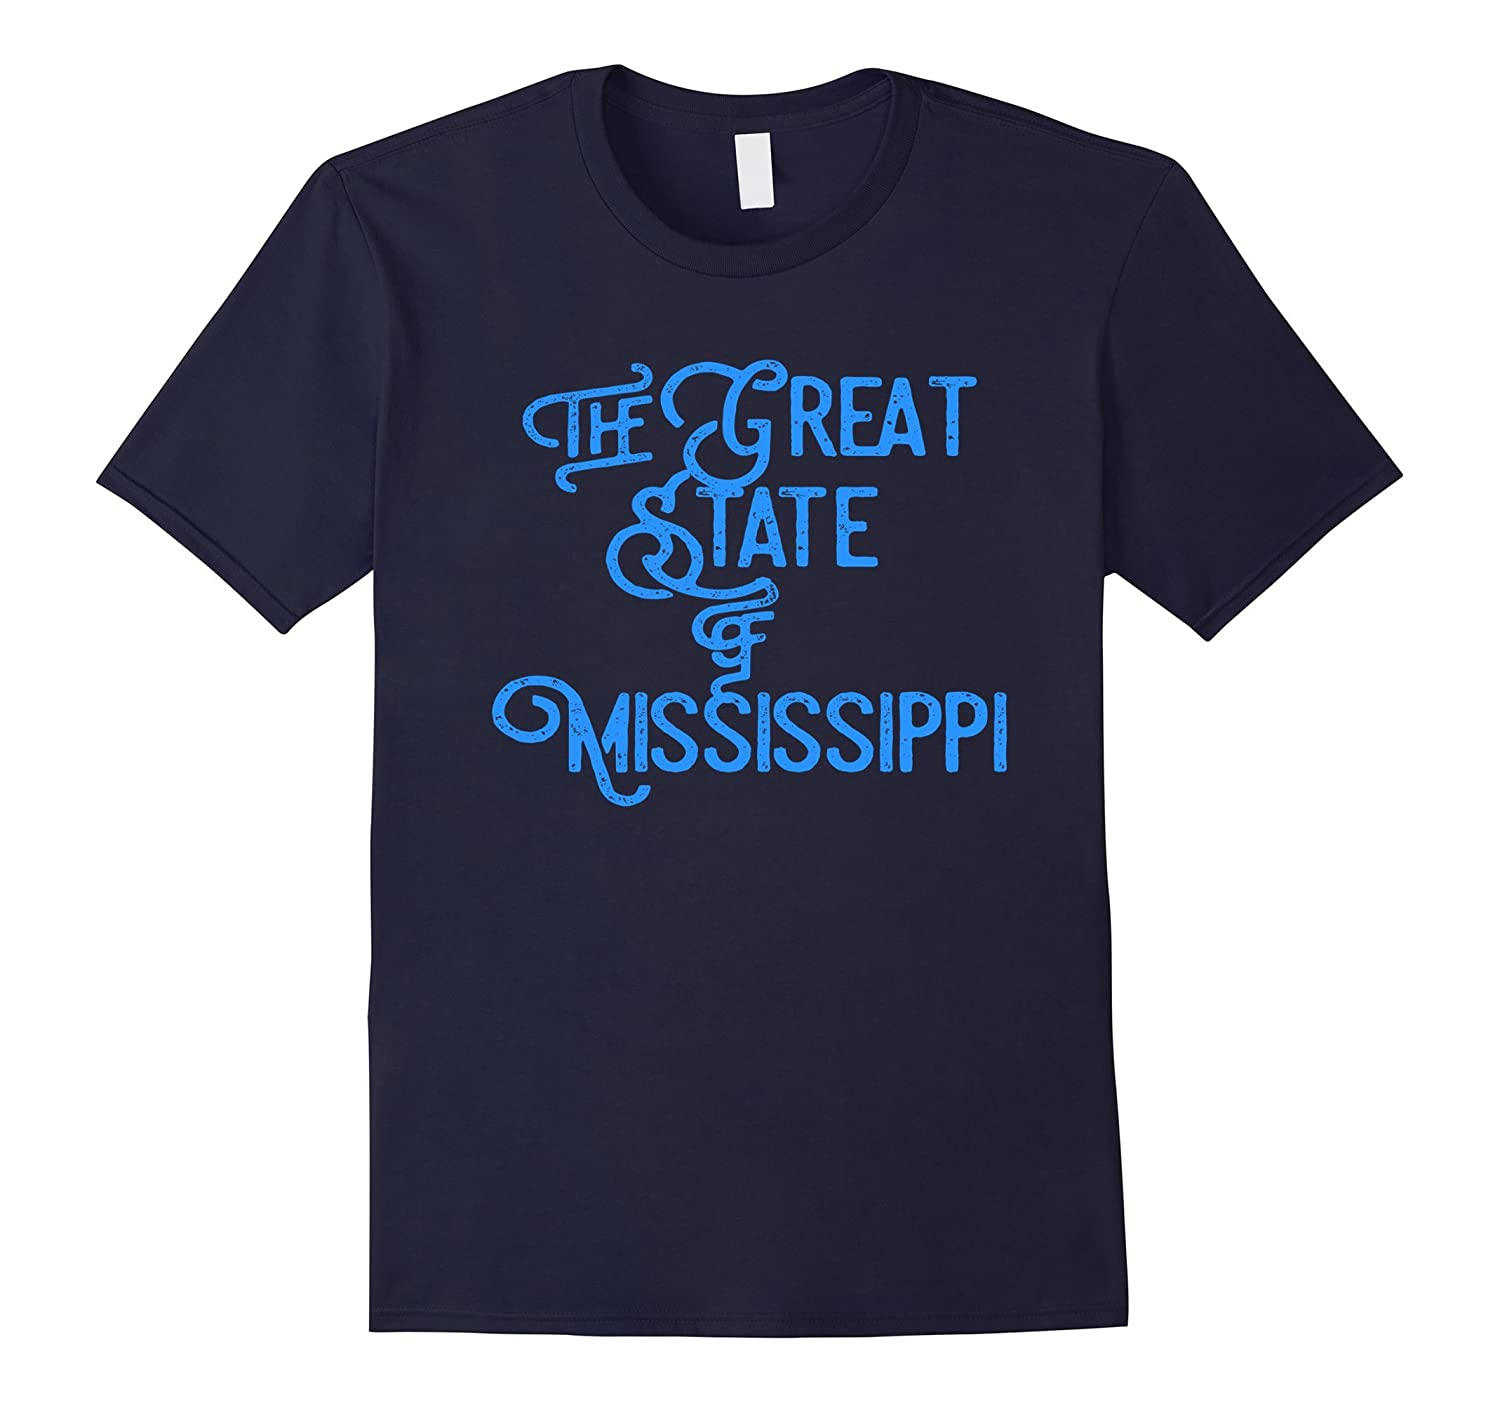 The Official Great State of Mississippi T-Shirt (Blue)